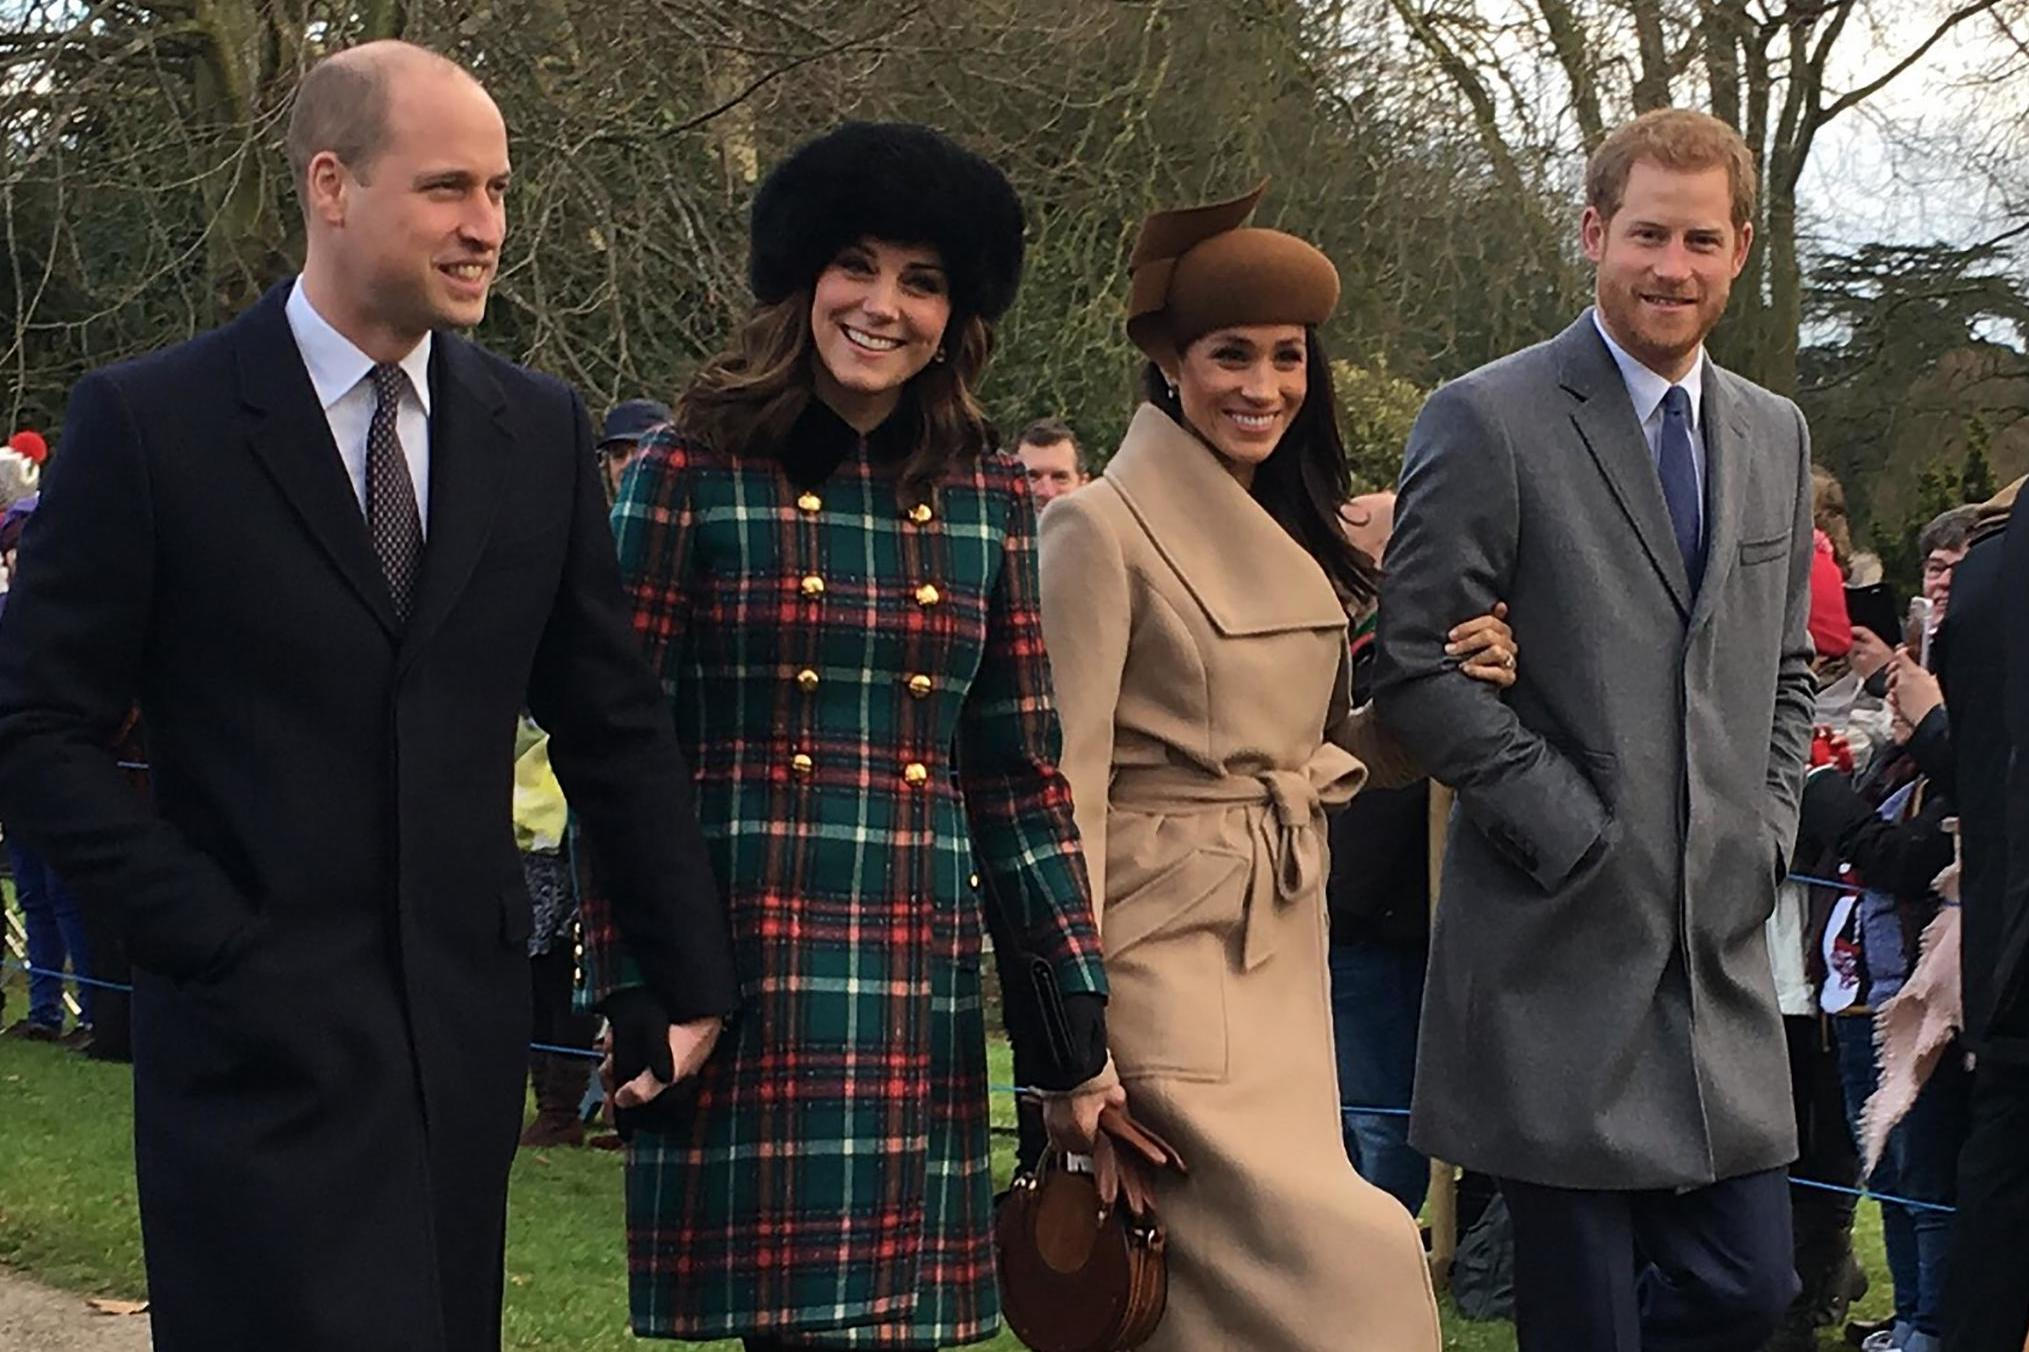 Royal Family Members turn a single mother's life turned upside-down by just some photos!